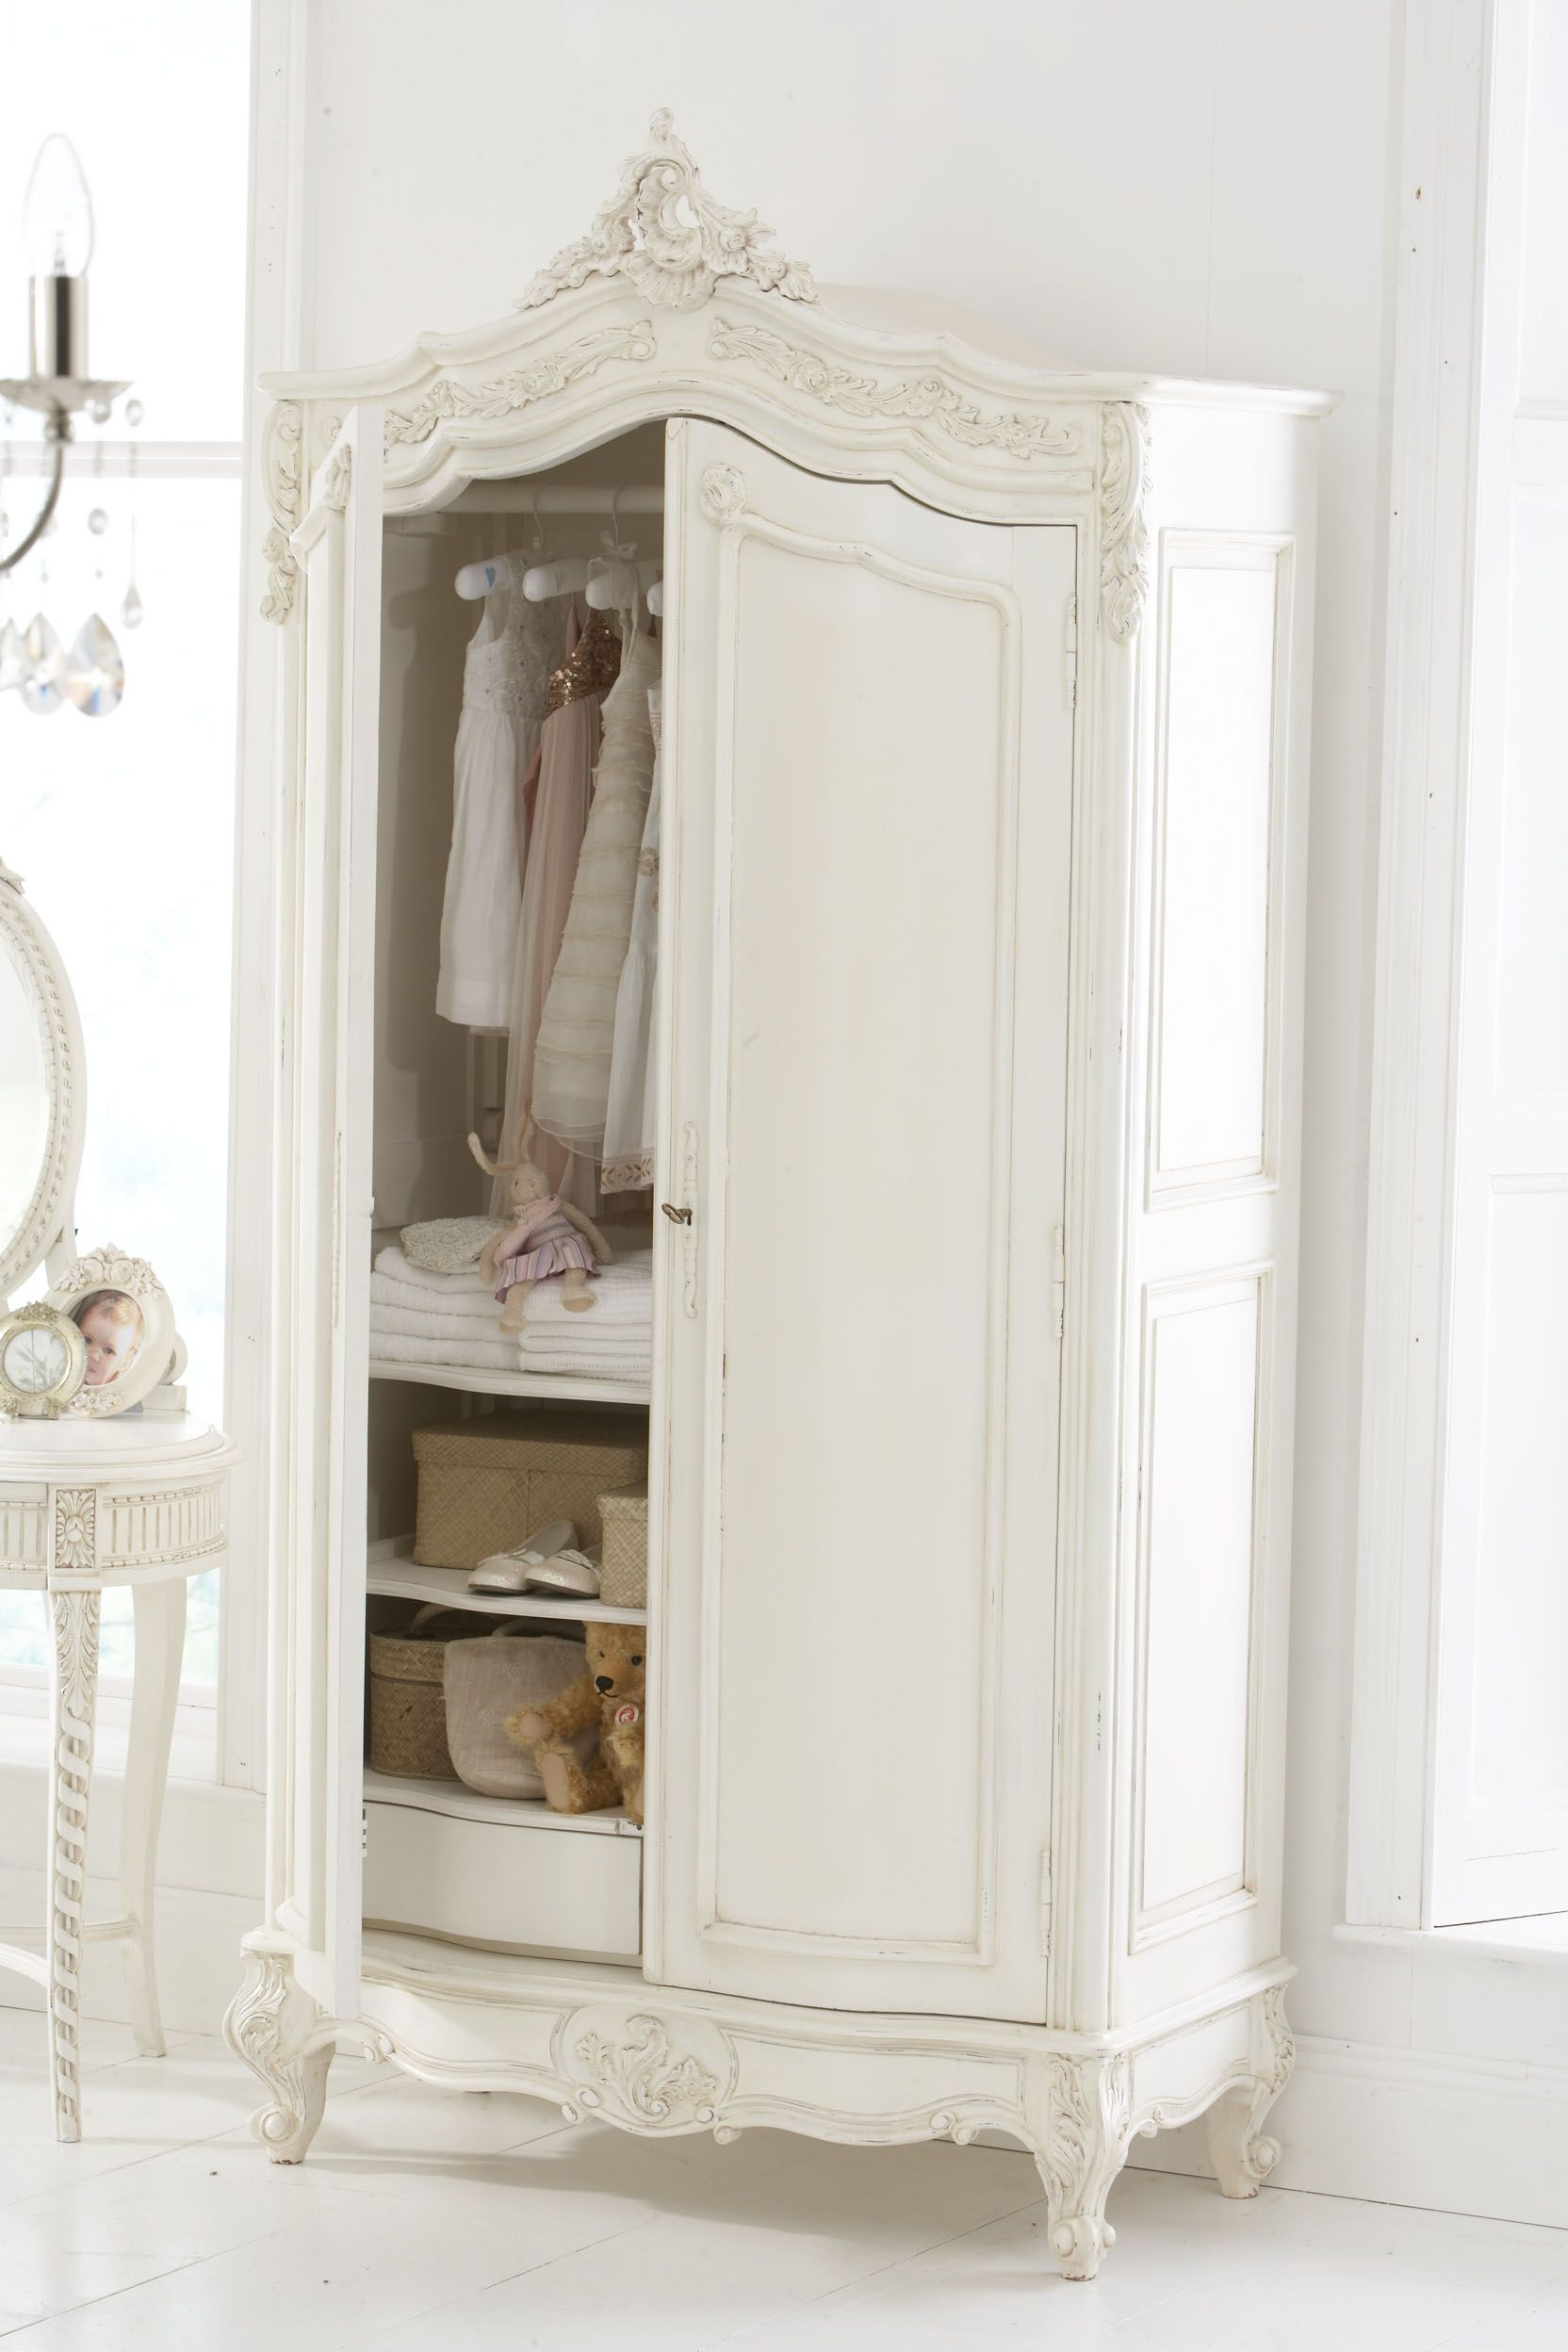 wardrobe i would remove the doors and put a curtain in. Black Bedroom Furniture Sets. Home Design Ideas